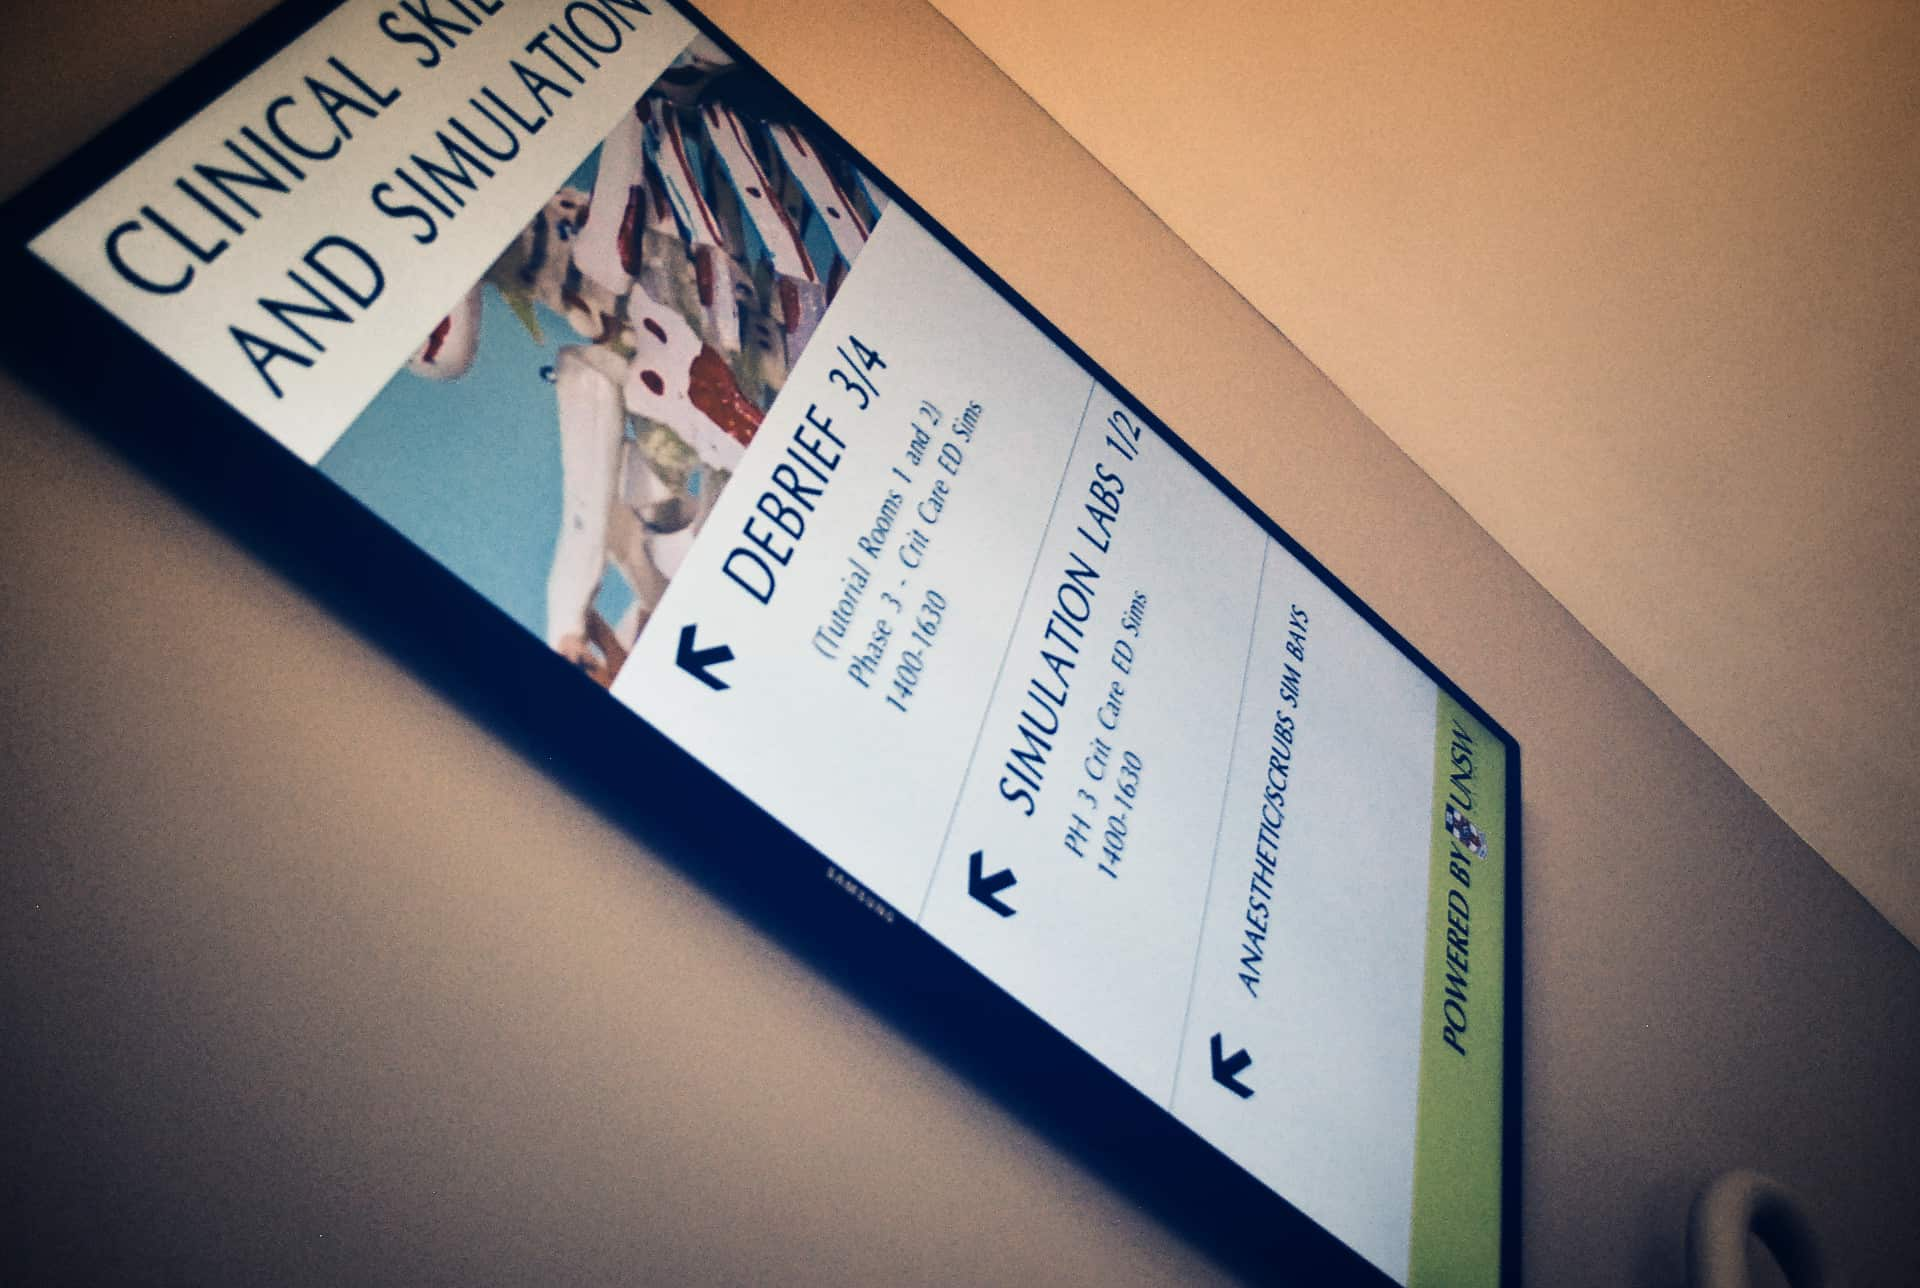 Advertise Me - Digital Signage UNSW